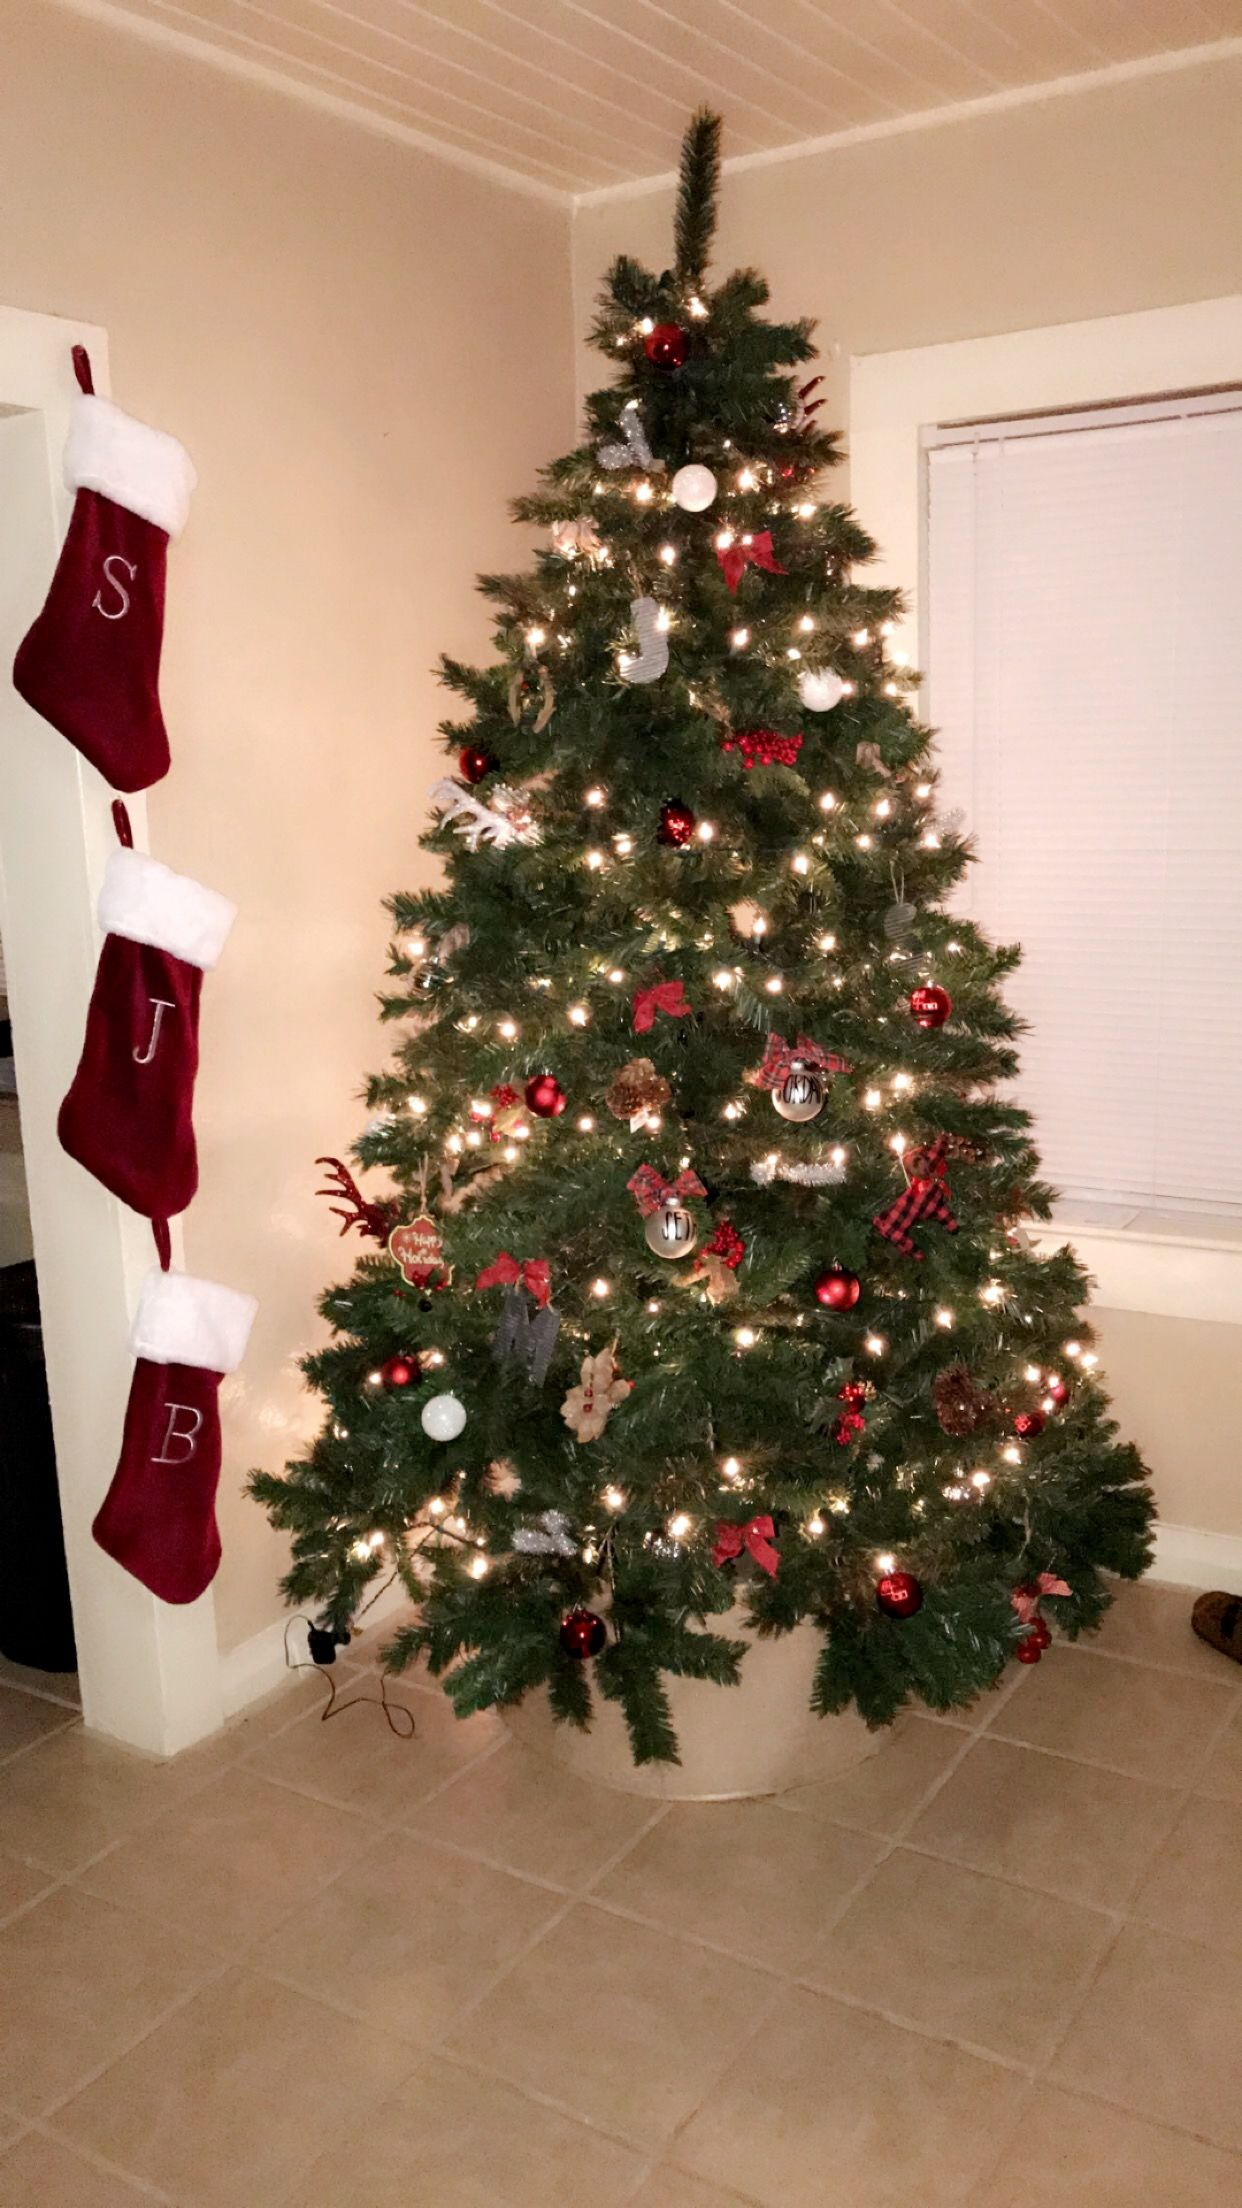 Simple farm style Christmas tree *all ornaments are from